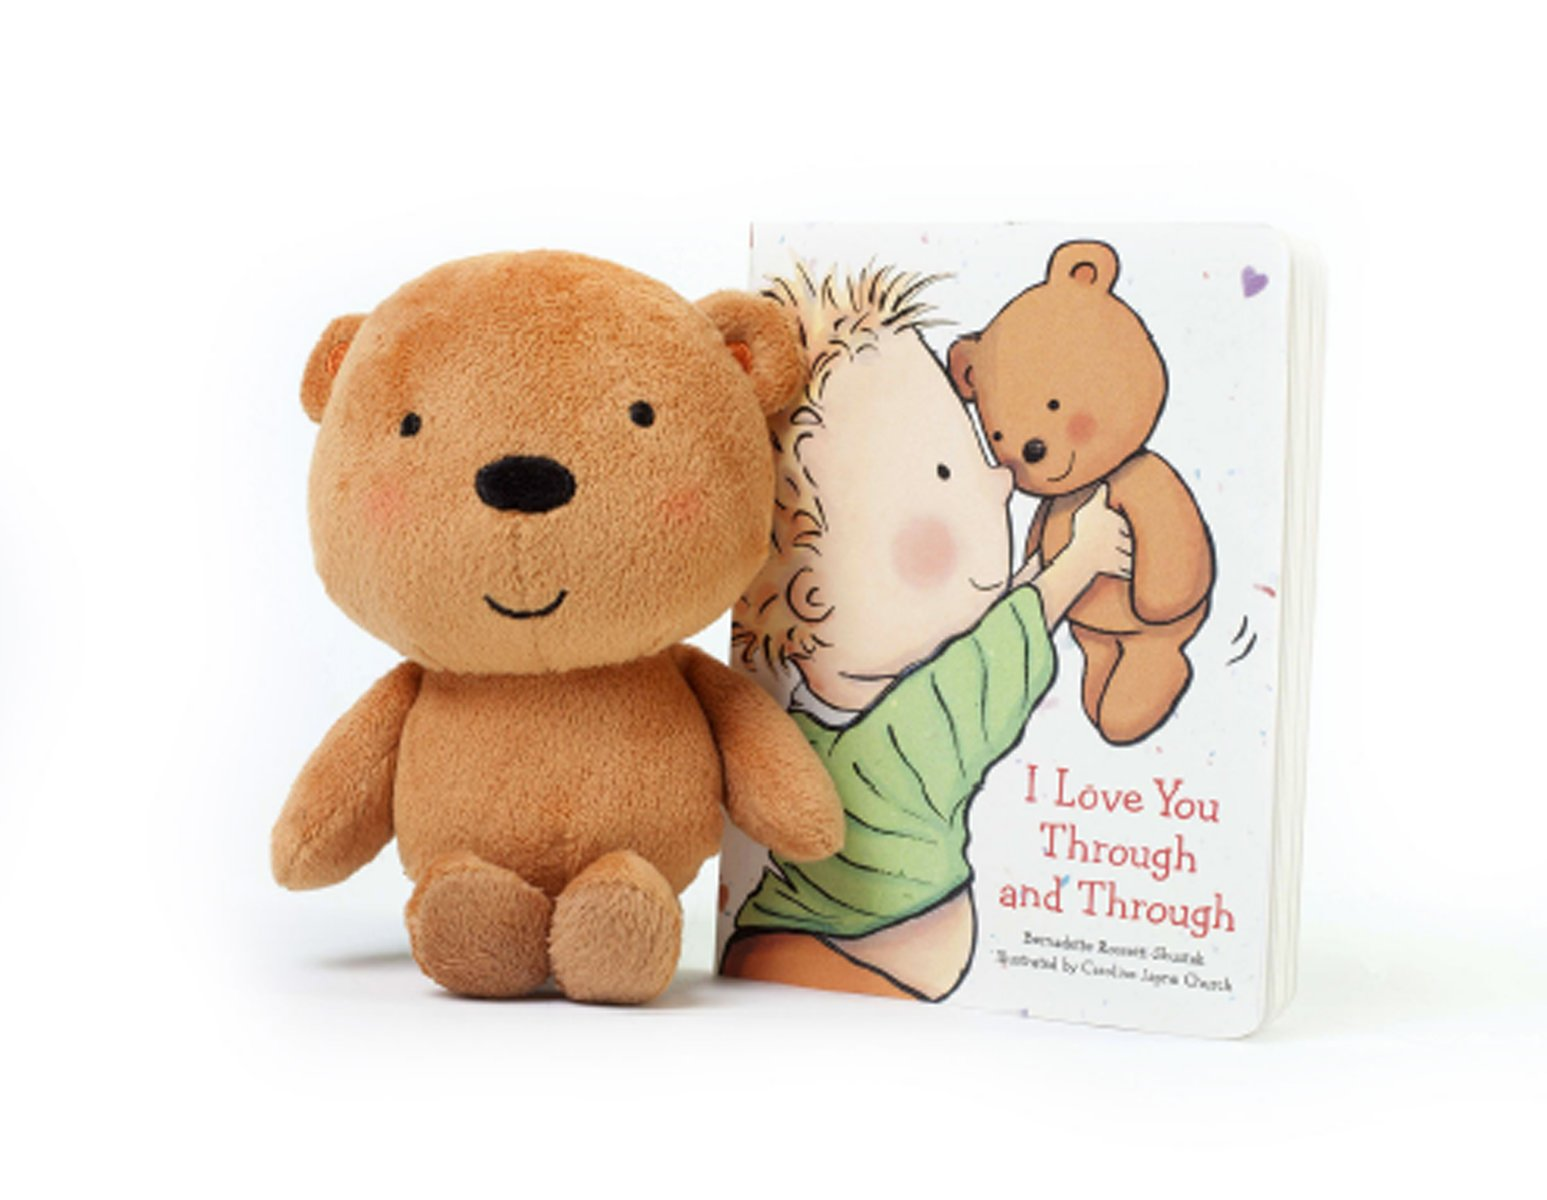 Love You Through Board Plush product image